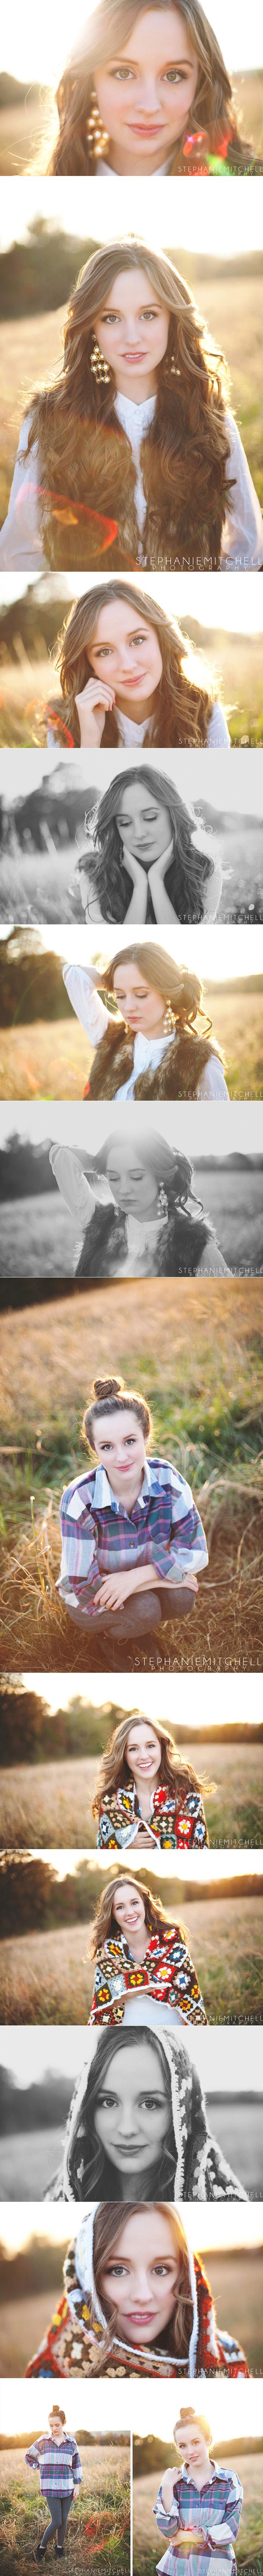 @Leslie Williams - senior photography inspiration  I really like the innocence of most of these. Really pretty.